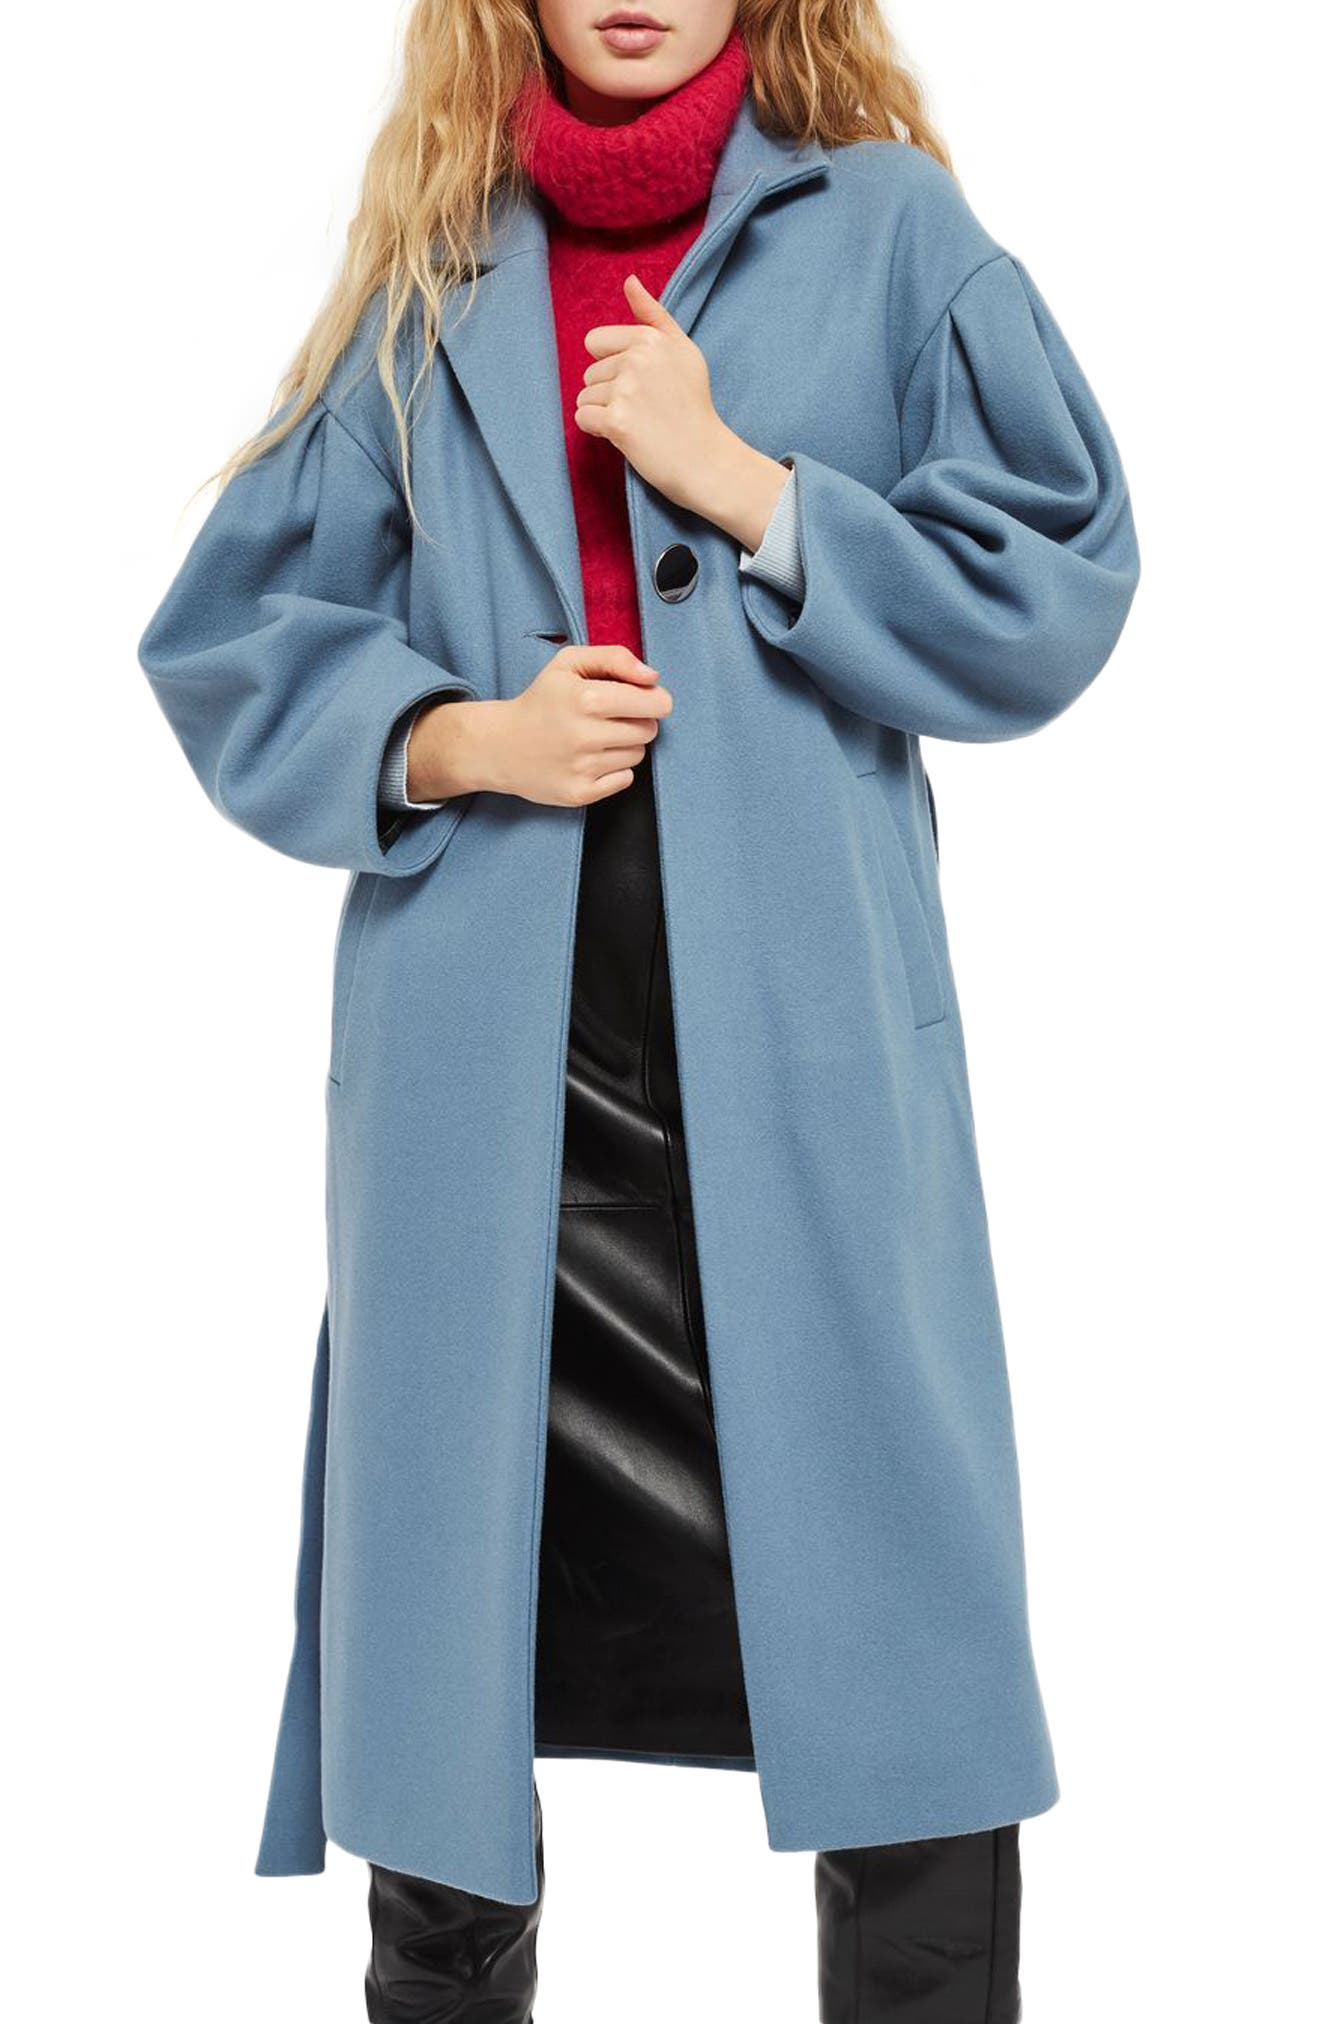 Topshop Mutton Sleeve Belted Long Coat